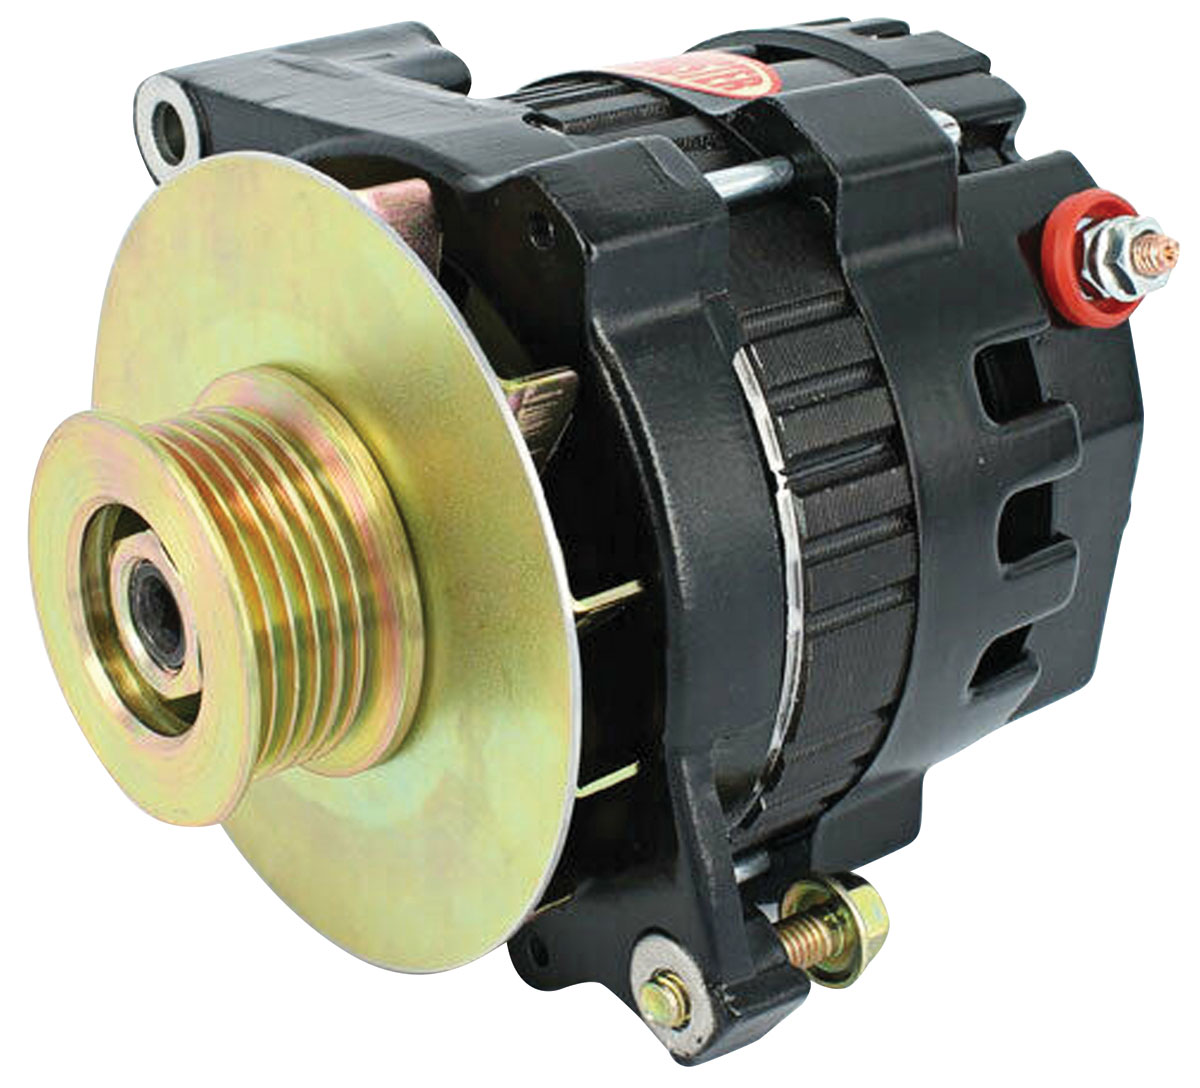 Alternator, Powermaster, 1954-88 GM, CS121, 100A, 6-rib Pulley